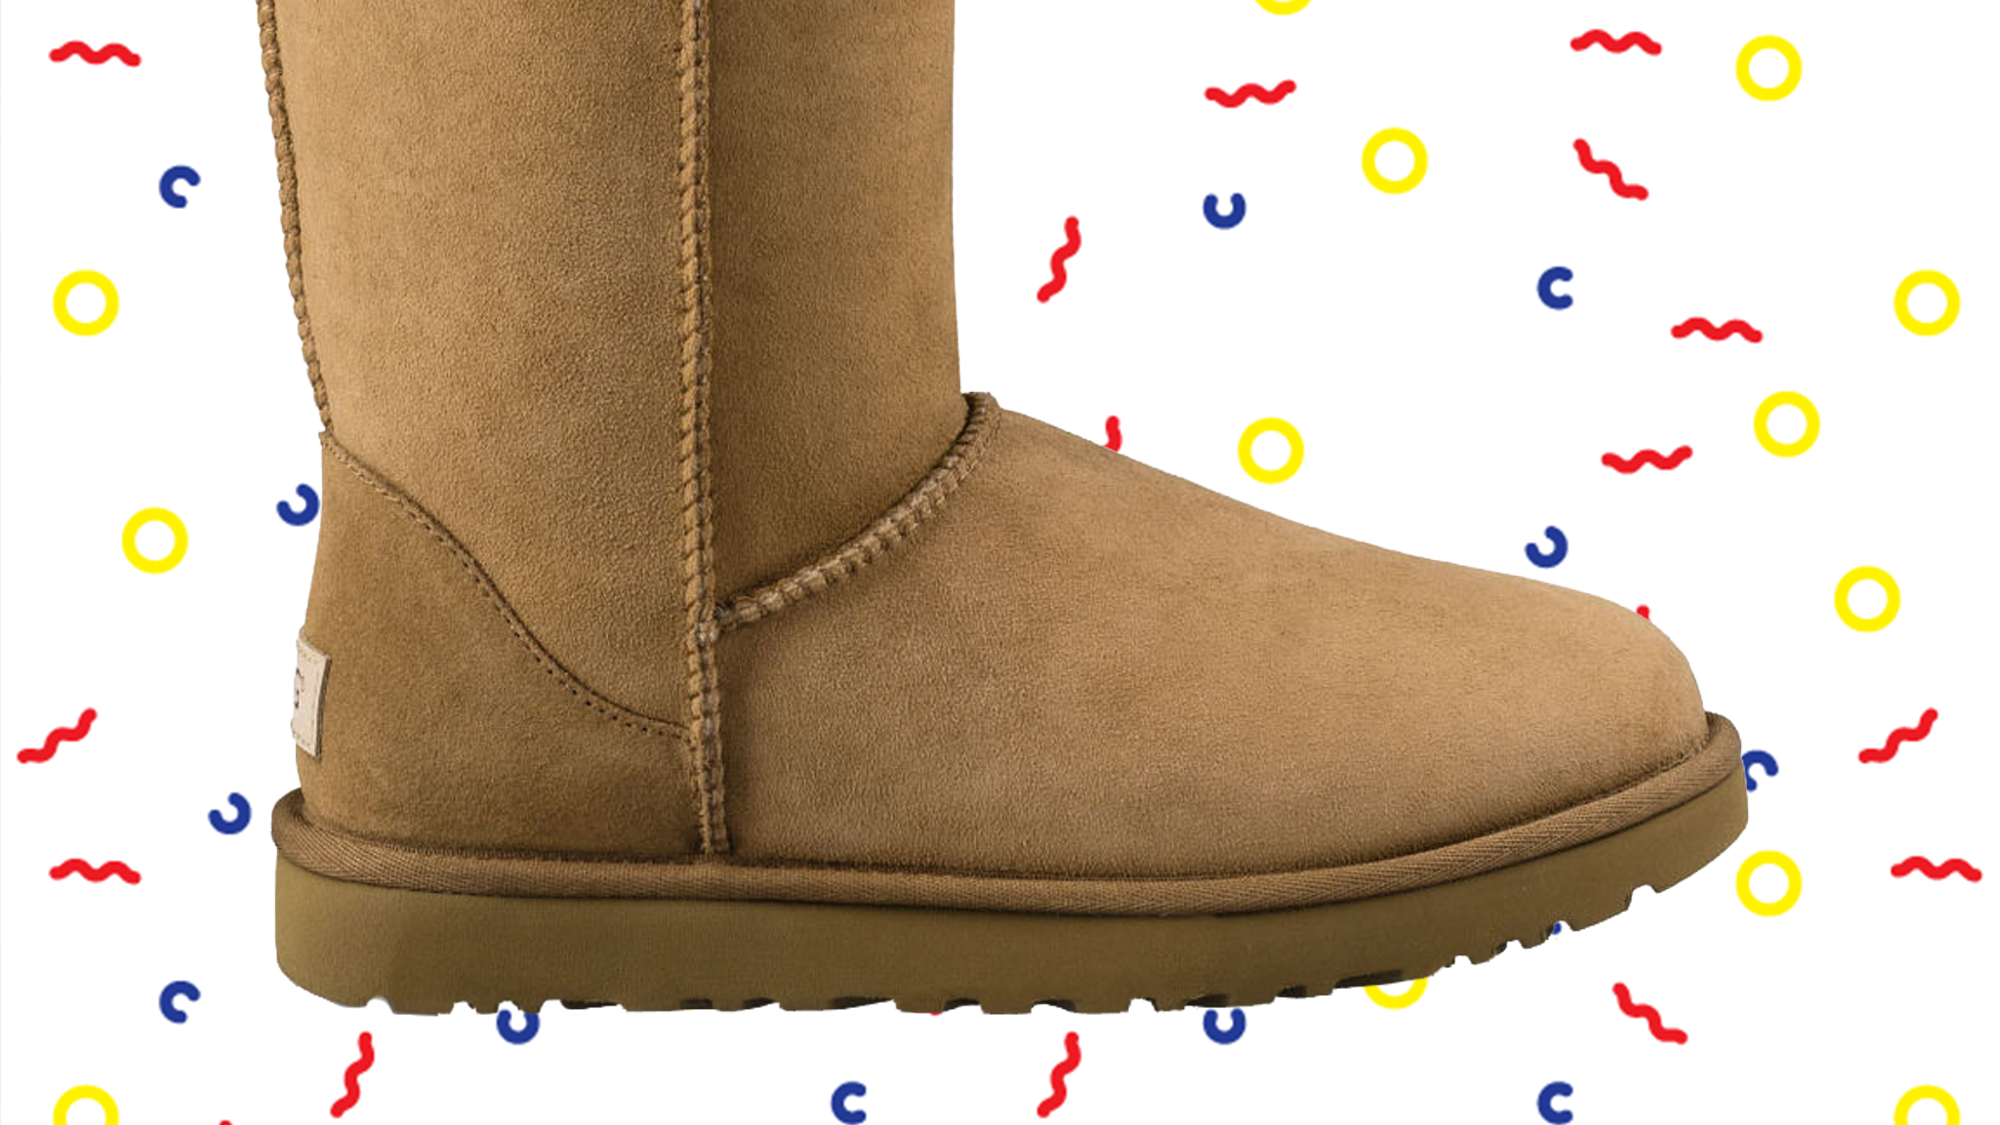 b6d883be2e2 What's So Different About These New Uggs?